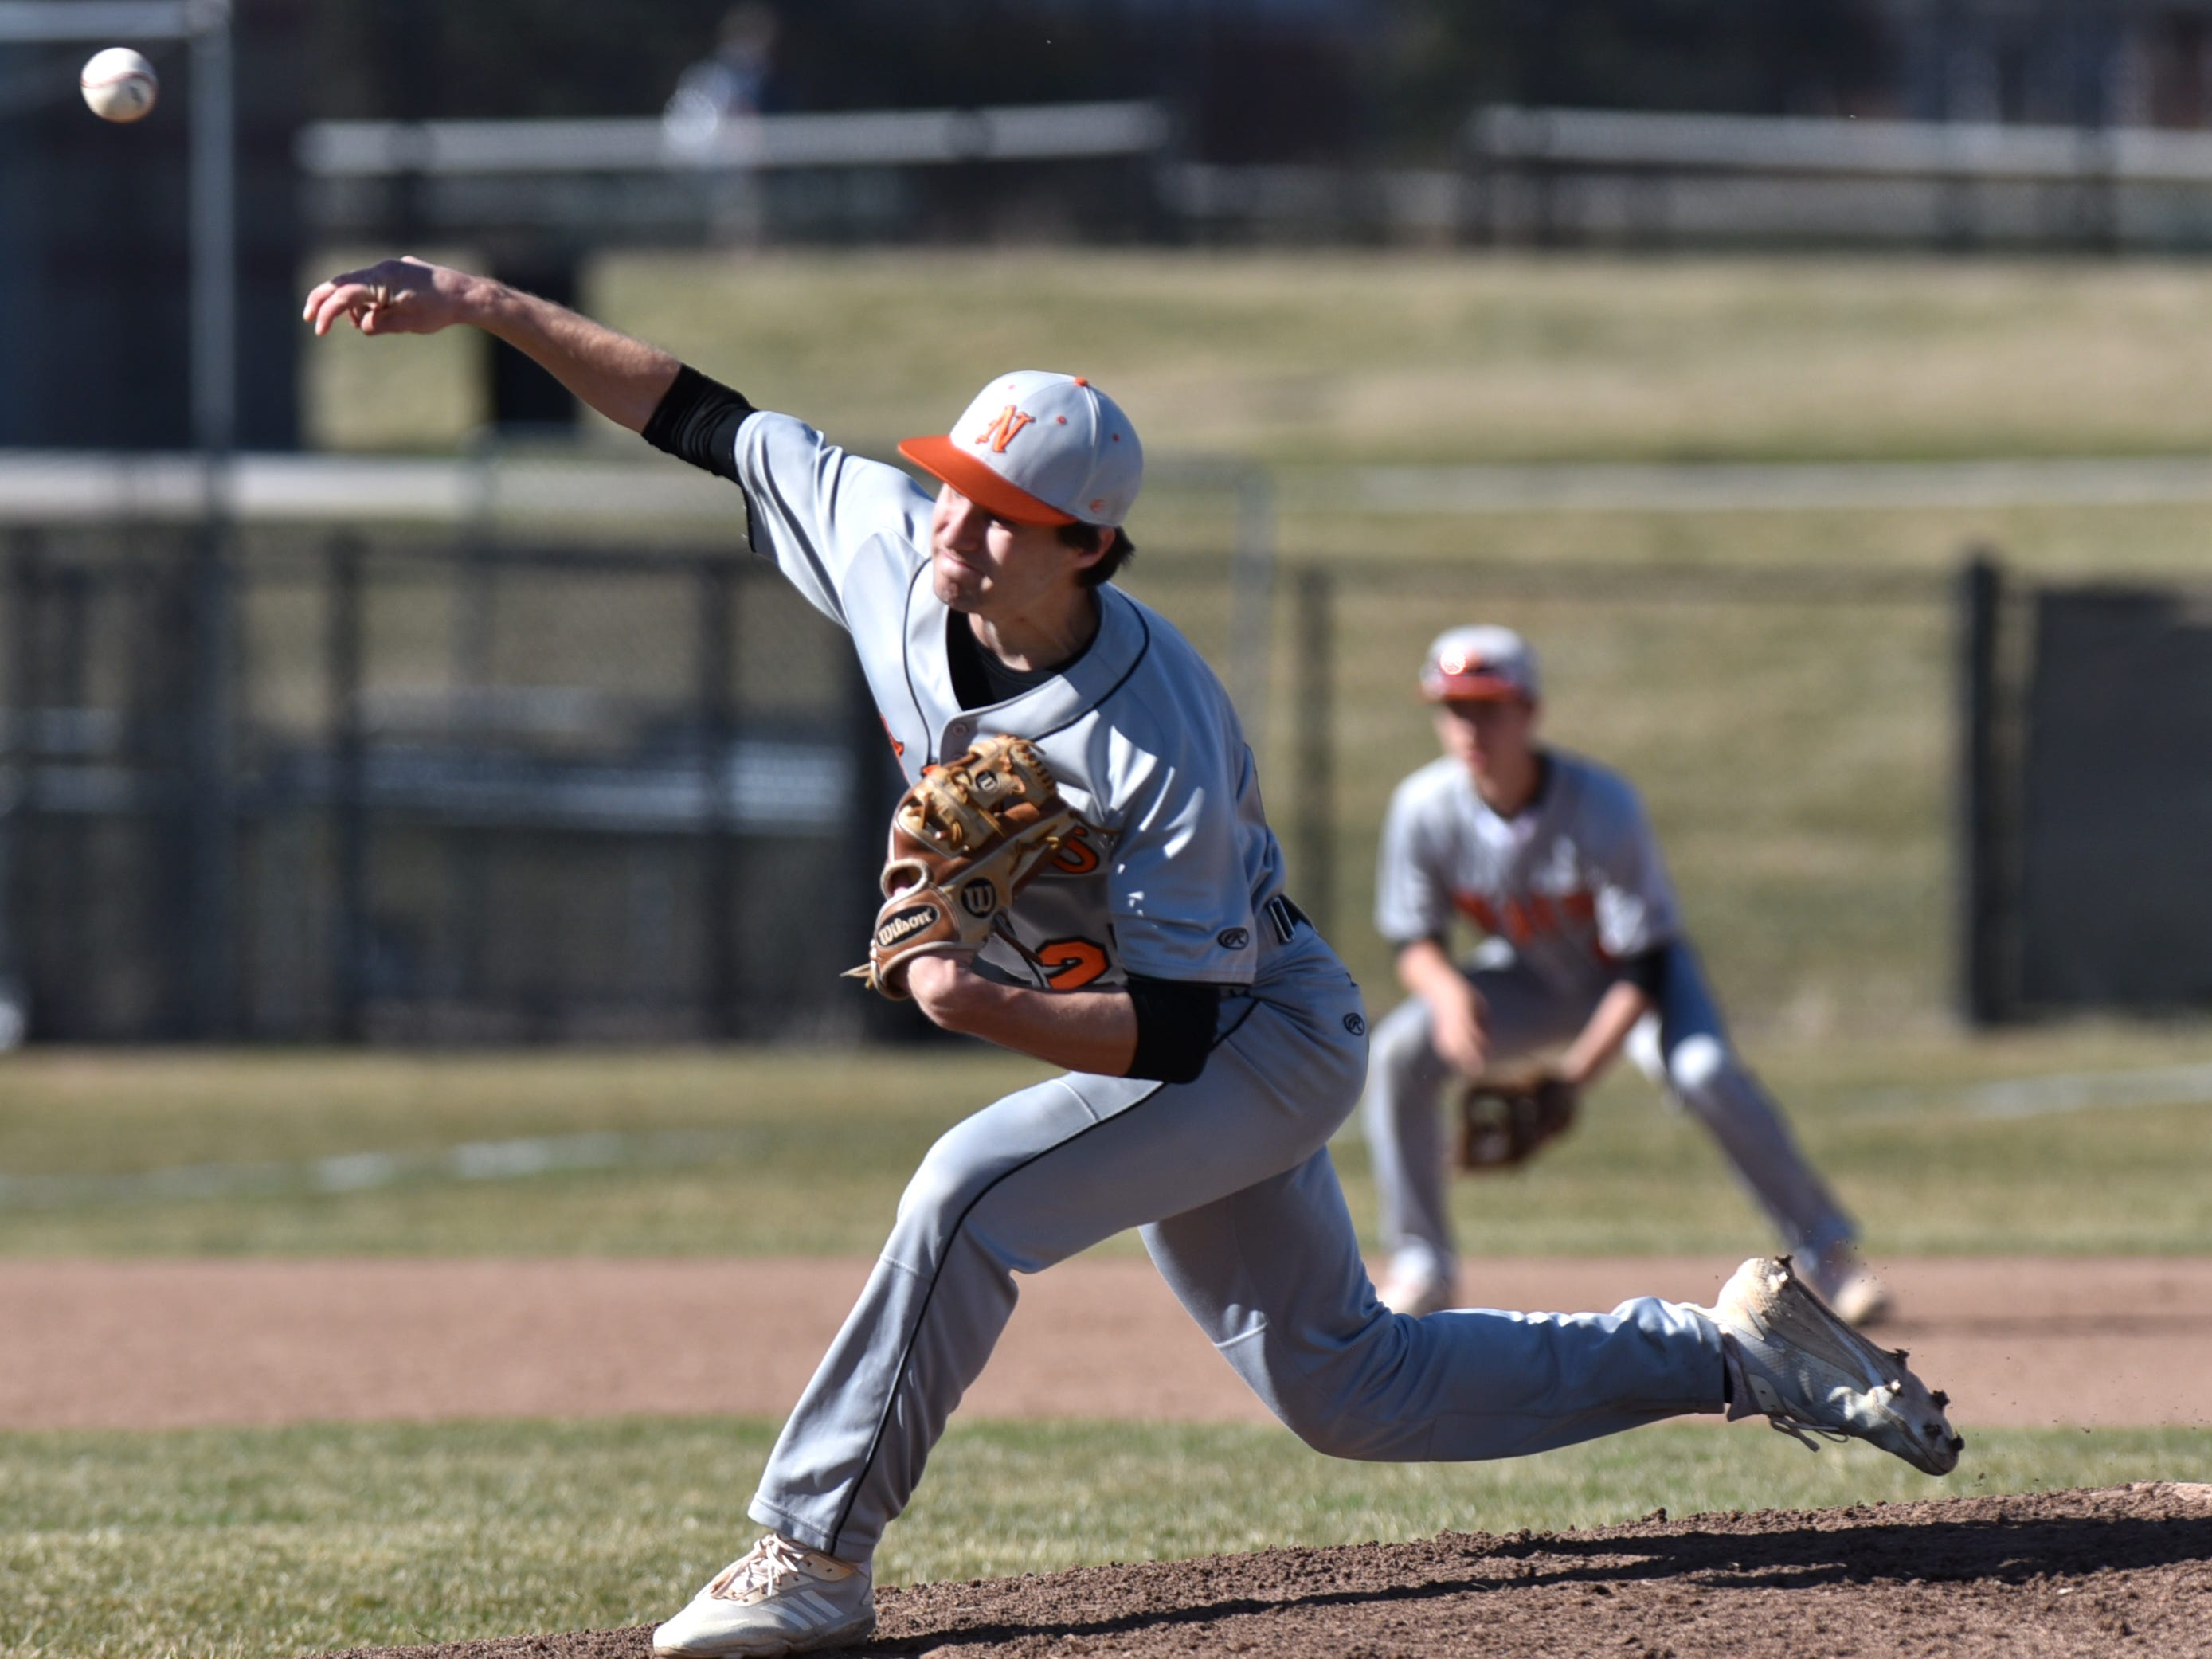 Mustang pitcher Spencer Ziparo fires one to home plate.